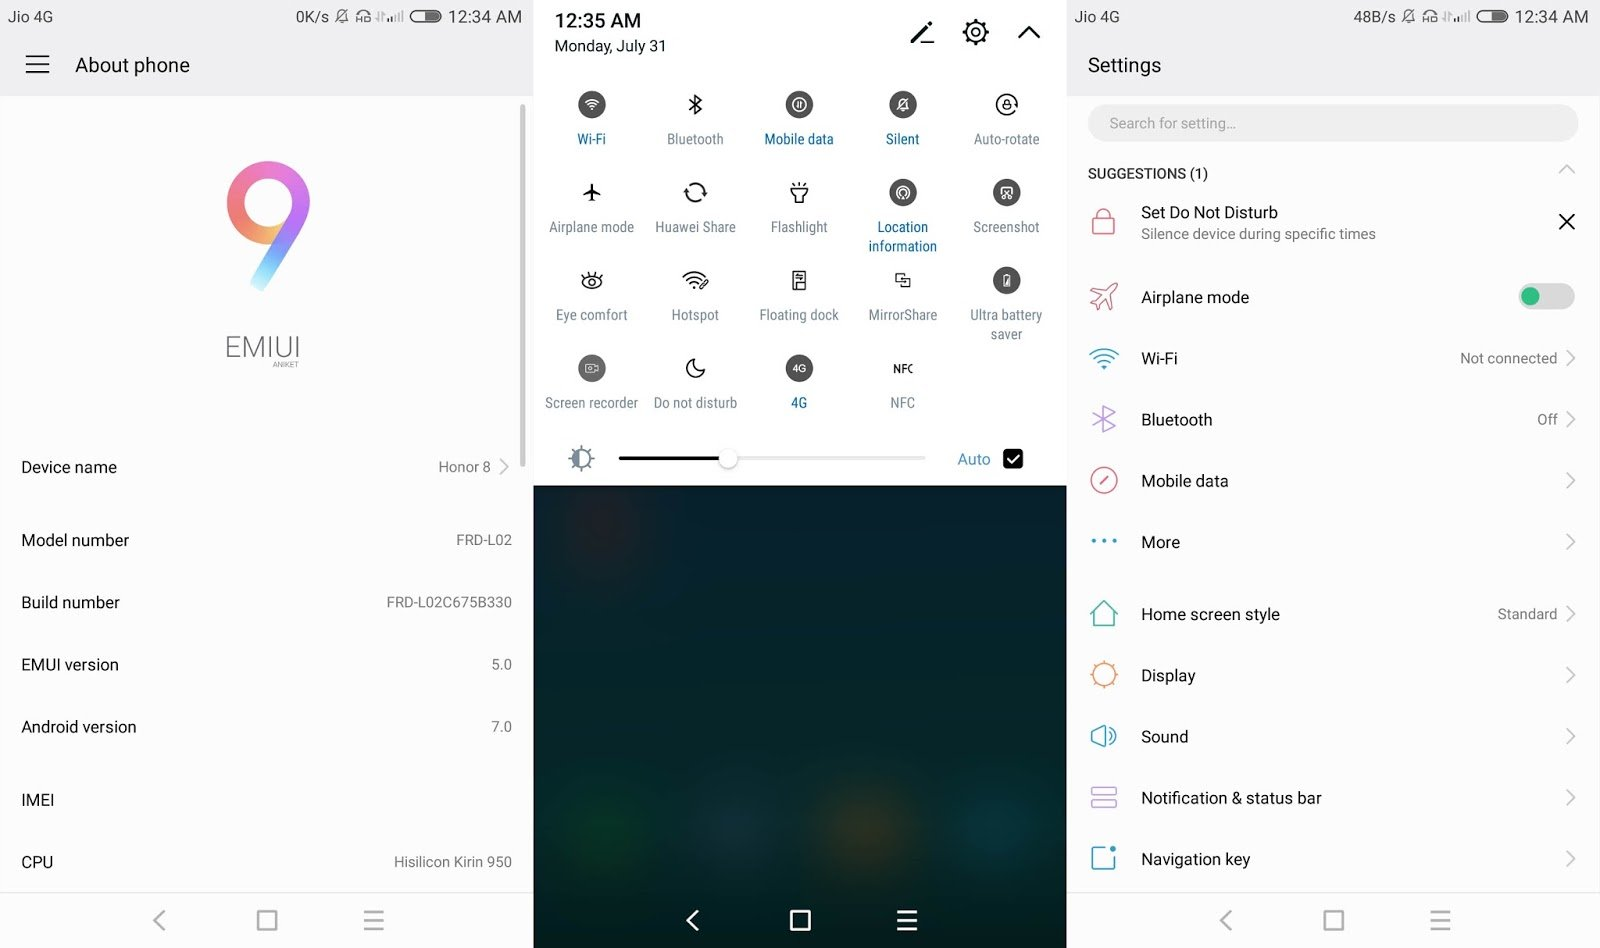 Download MIUI 9 Theme For EMUI 5 0 Devices Without Root